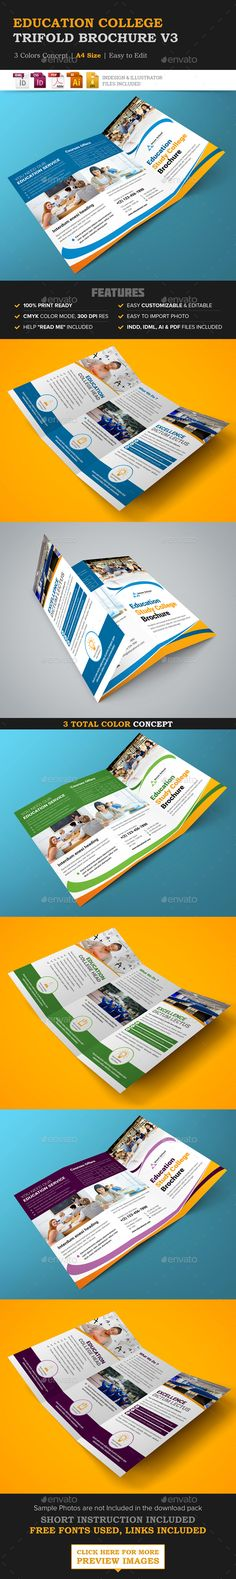 Property Sale Trifold Brochure Template V2 | Brochures, Business And  Property Sale